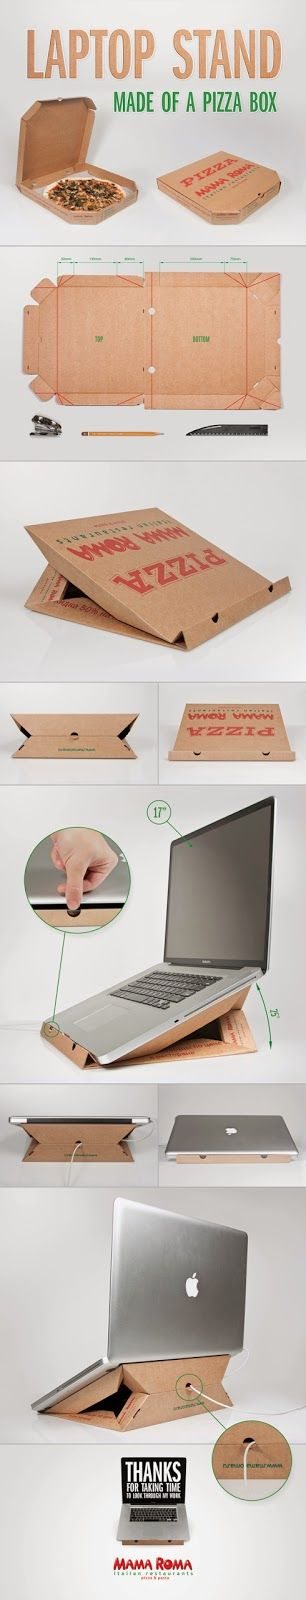 Laptop-stand-made-of-a-pizza-box.jpg 306×1.600 pixels